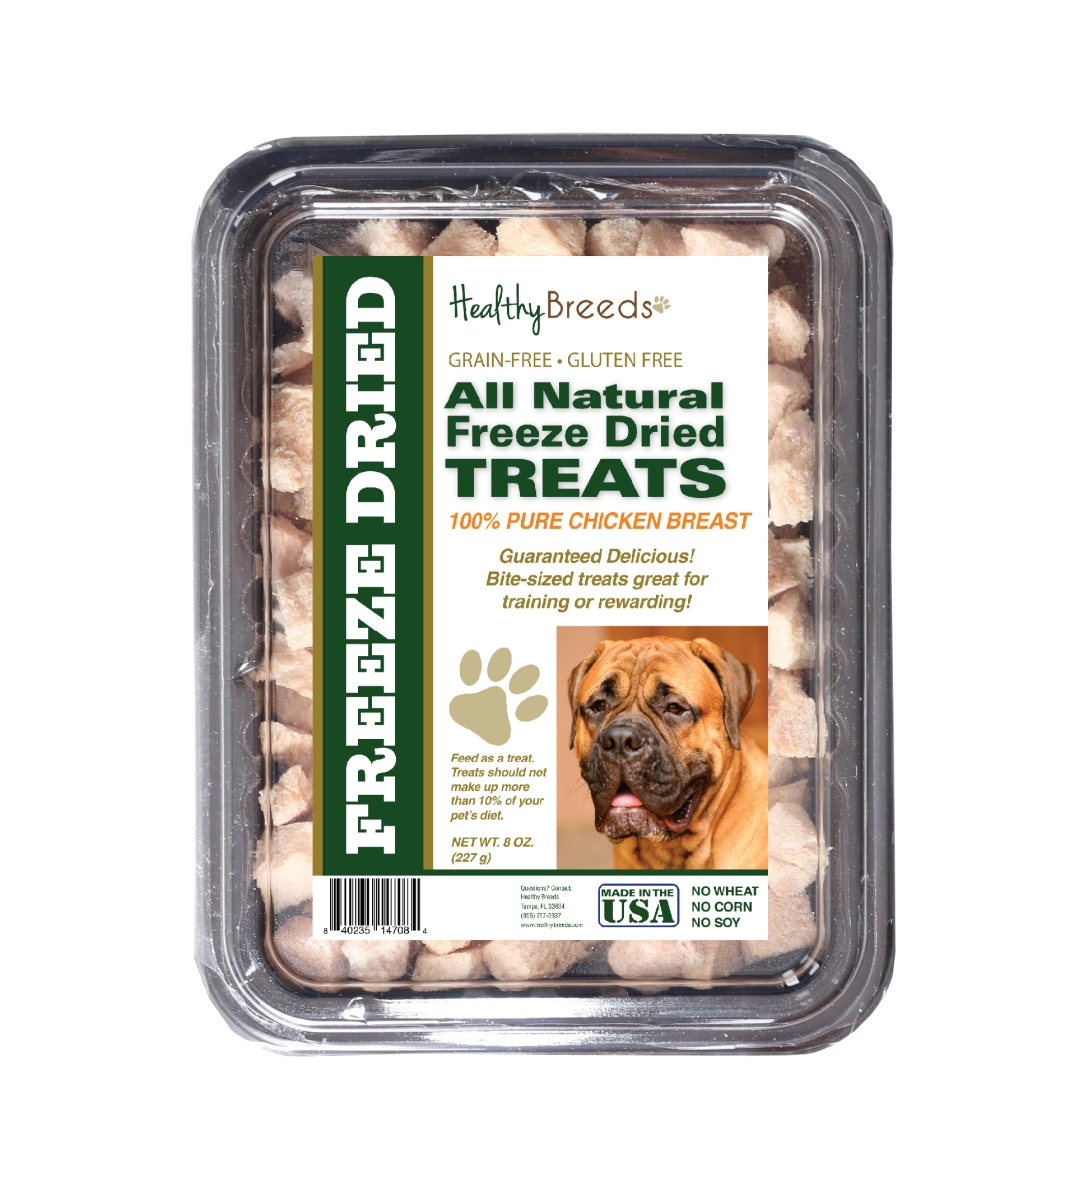 Healthy Breeds 840235147084 8 oz Bullmastiff All Natural Freeze Dried Treats Chicken Breast